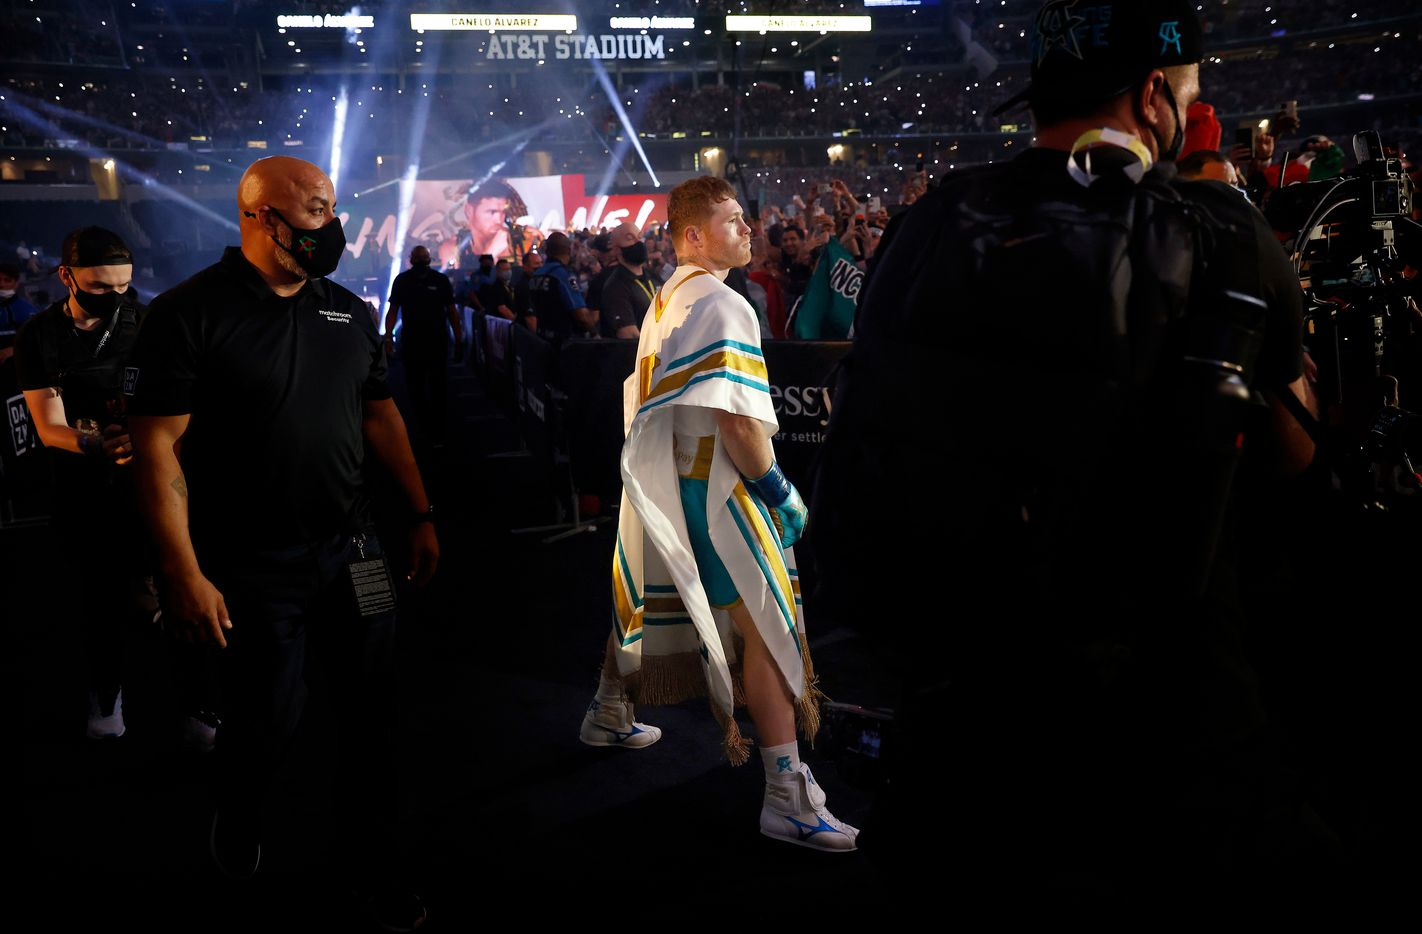 Boxer Canelo Alvarez struts to the ring as he's introduced to a mostly favorable crowd before his super middleweight title fight against Billy Joe Saunders at AT&T Stadium in Arlington, Saturday, May 8, 2021. (Tom Fox/The Dallas Morning News)